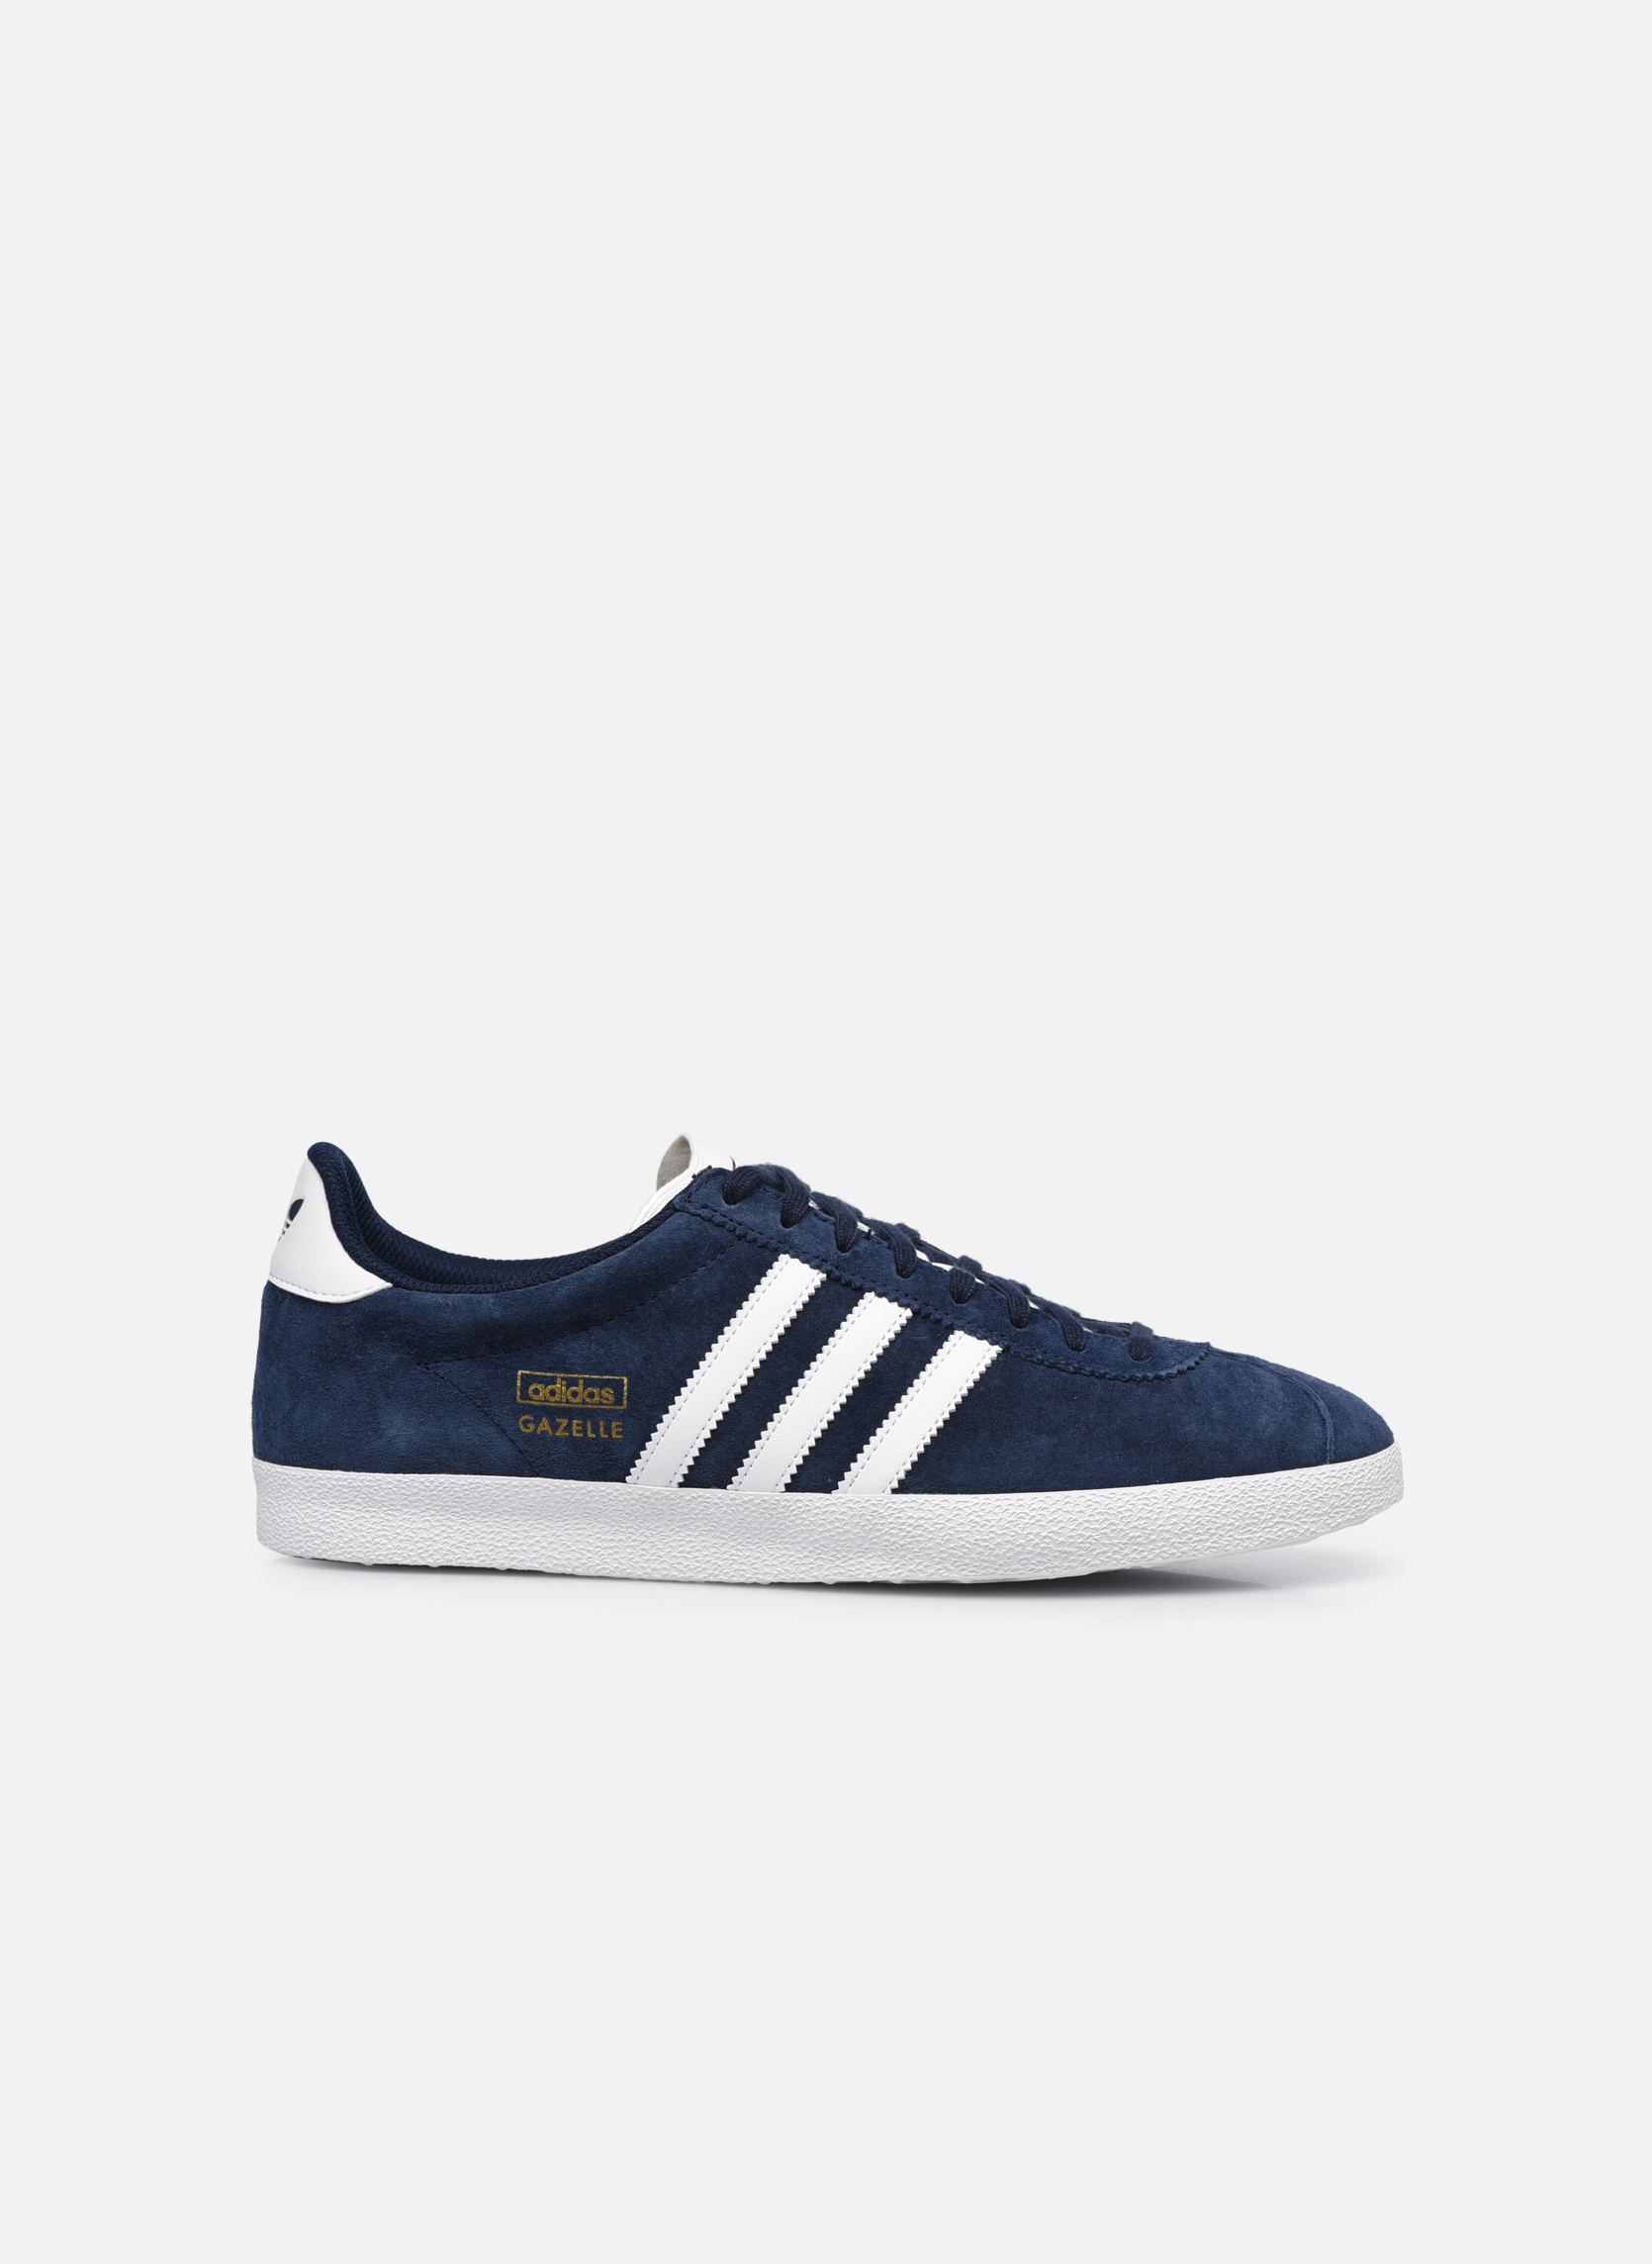 Gazelle Og Dark Indigo-Metallic Gold